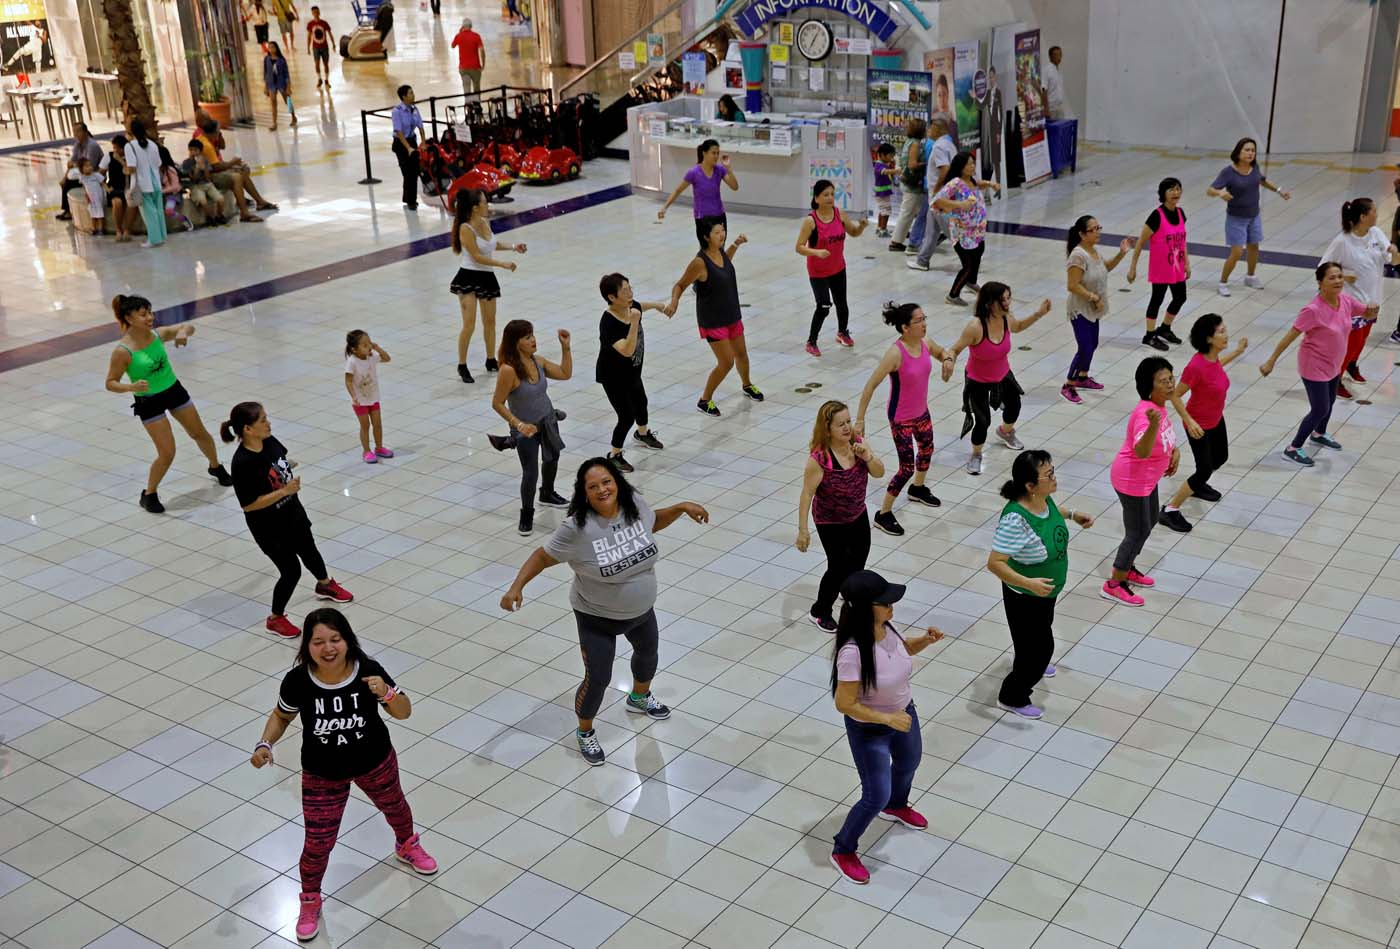 Residents do their daily routine Zumba class inside a mall on the island of Guam, a U.S. Pacific Territory August 10, 2017. REUTERS/Erik De Castro